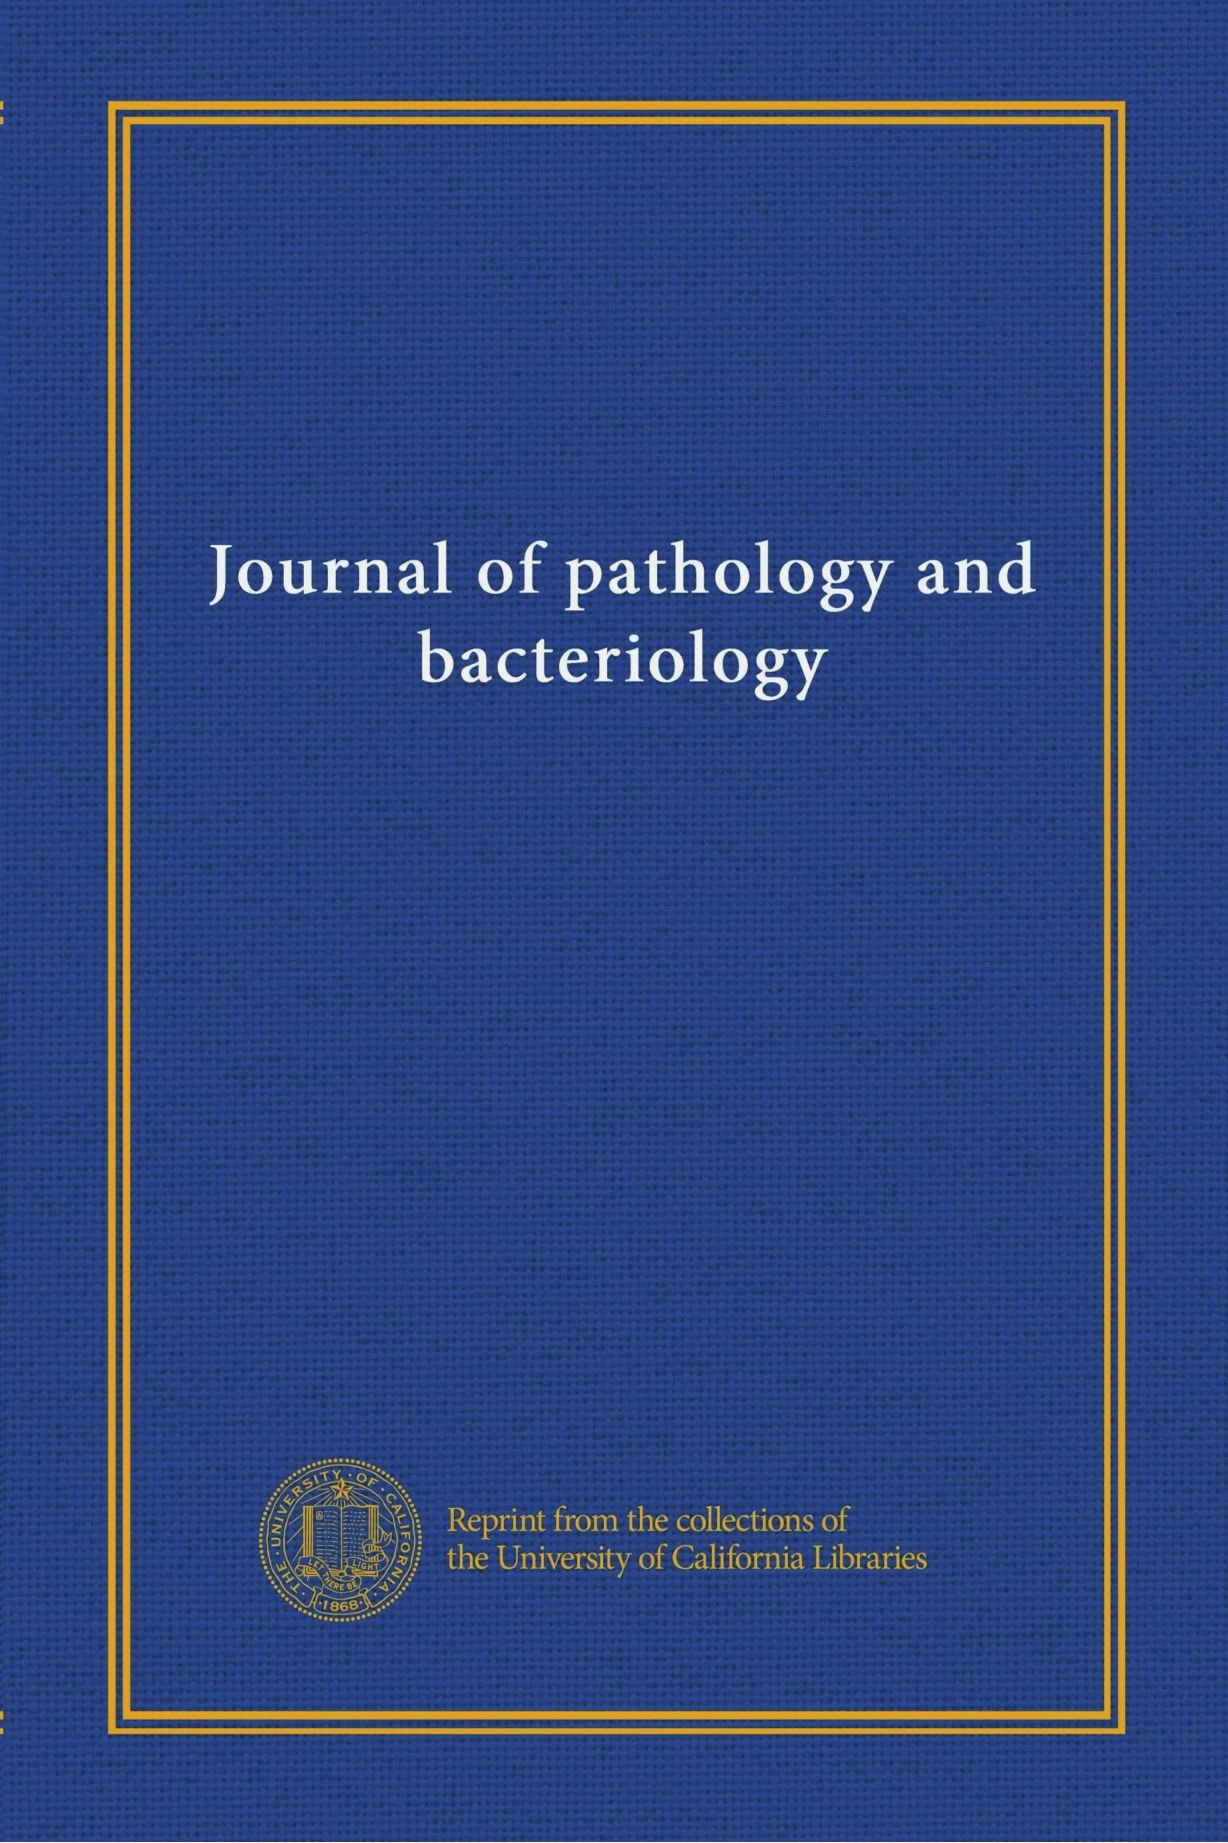 Journal of pathology and bacteriology (v.19 (1914-15))